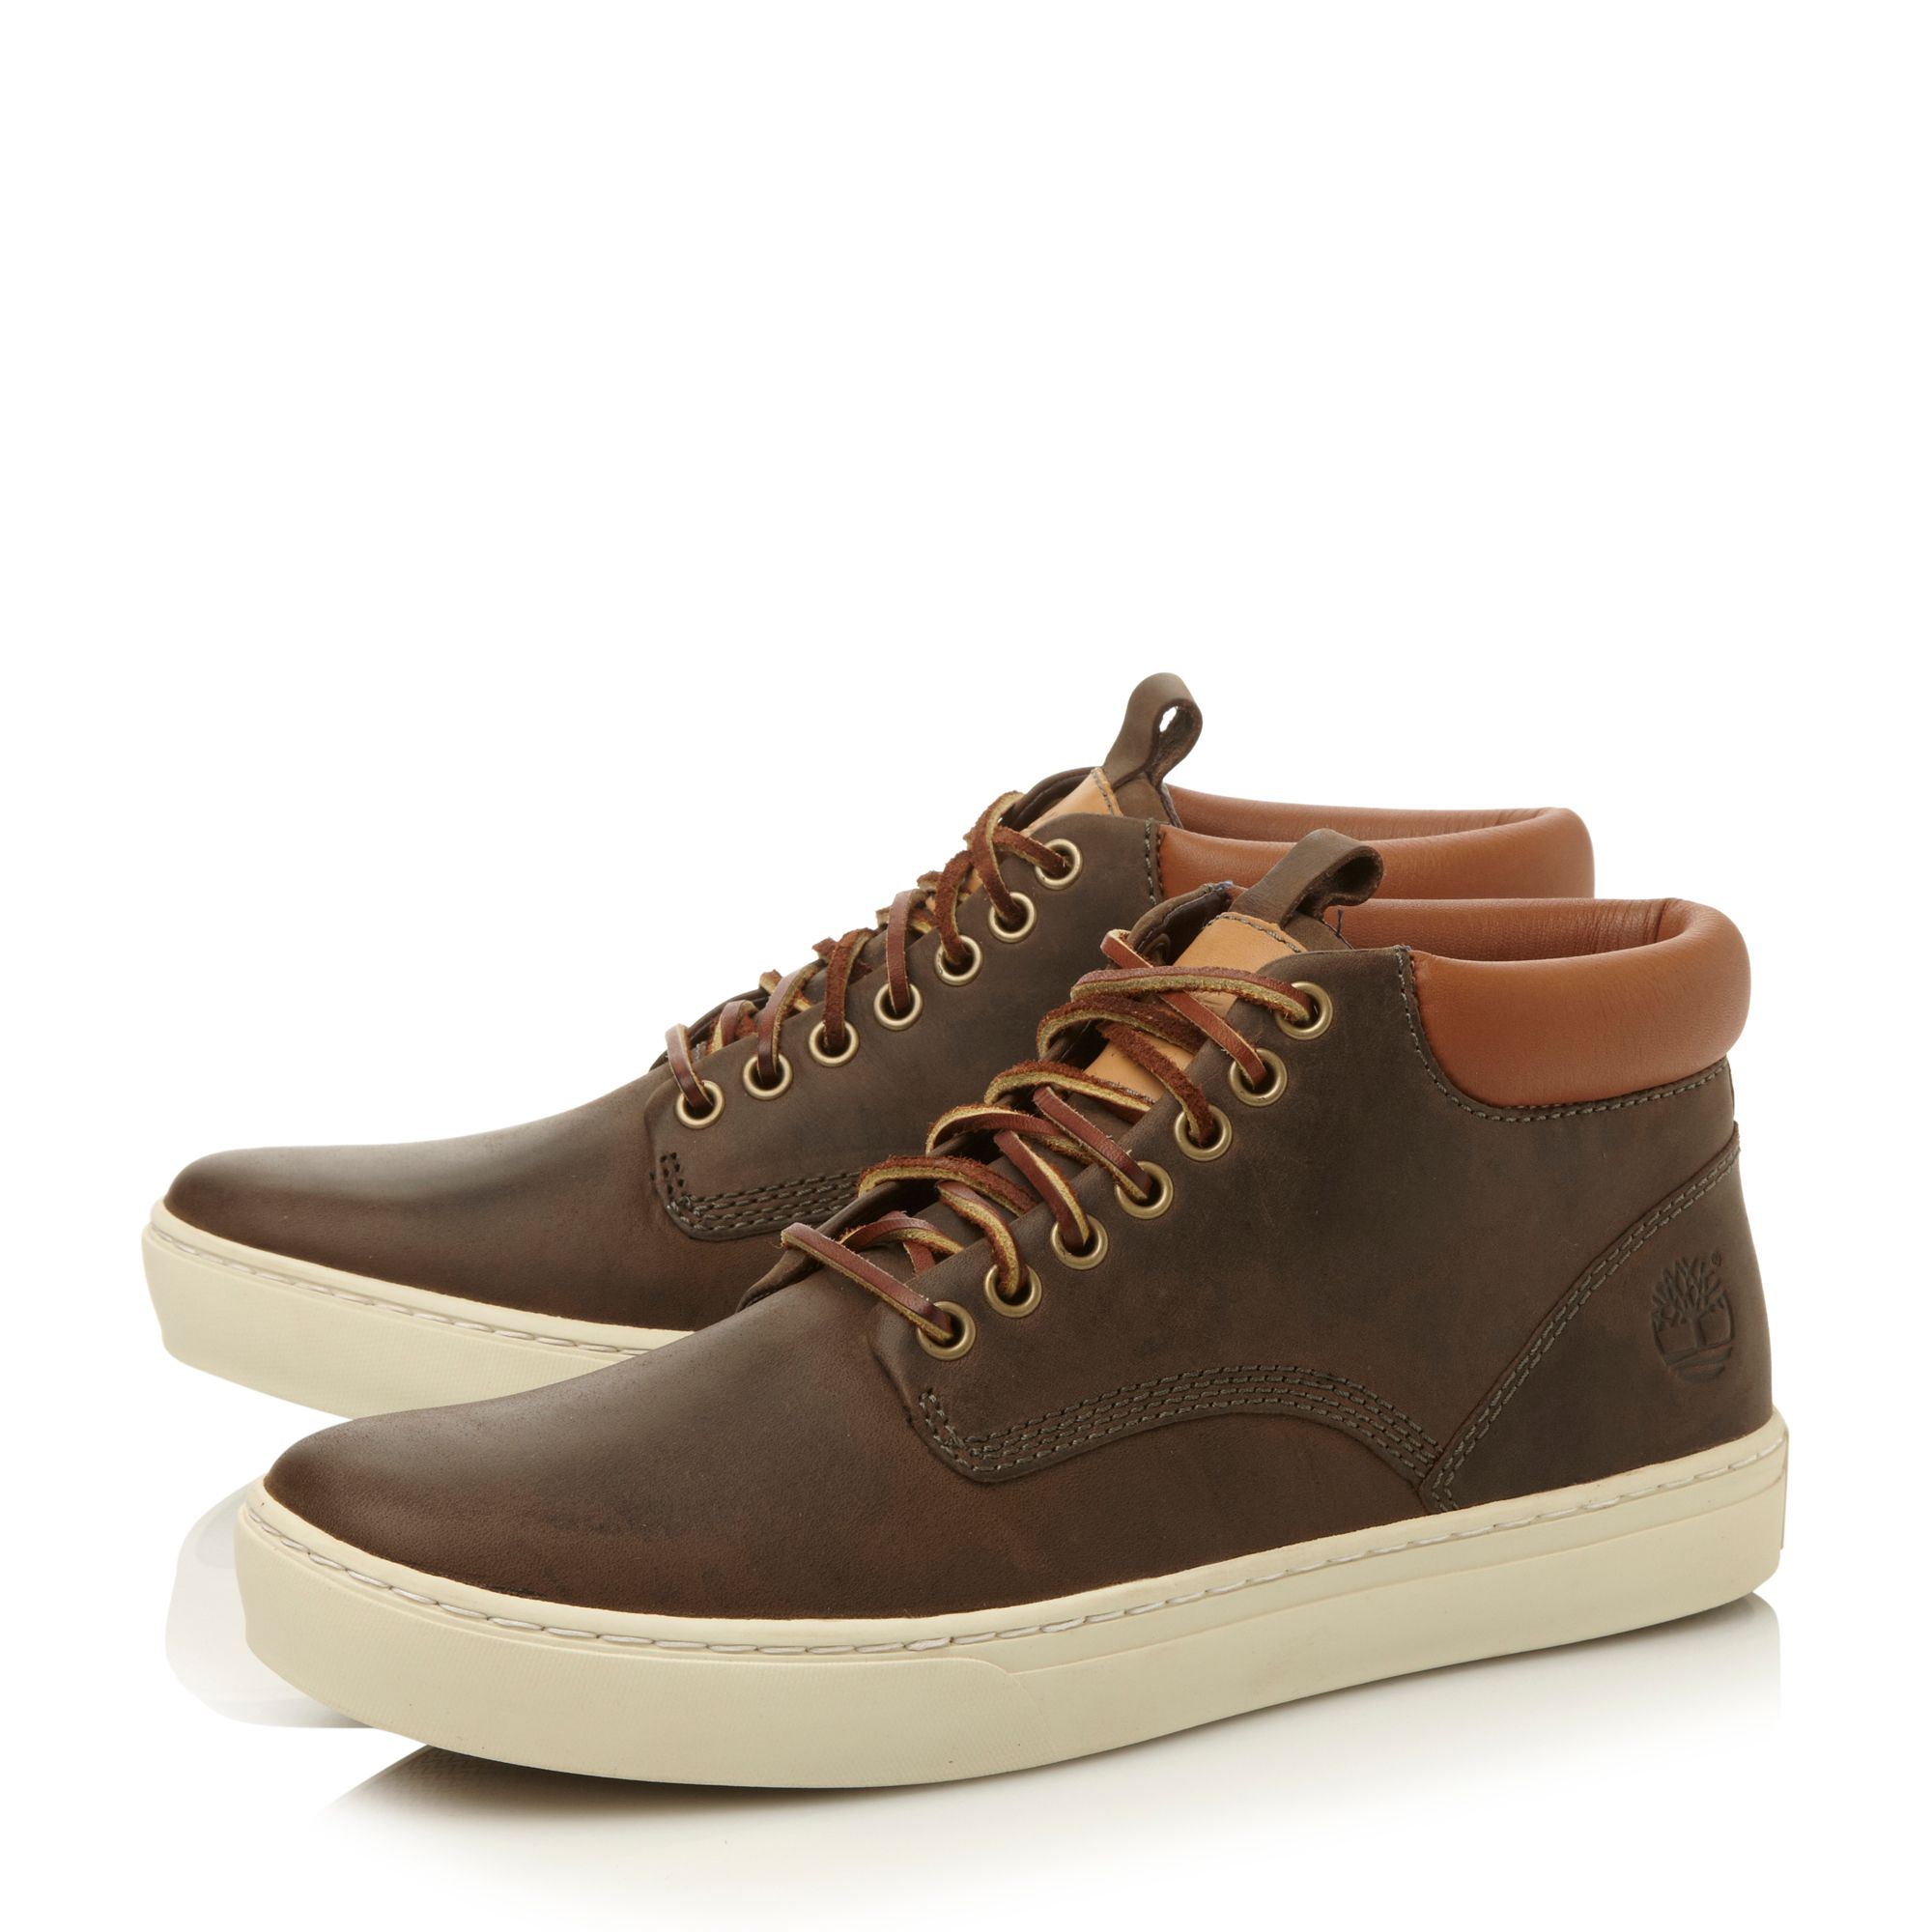 Cupsole chukka hitop lace up boot